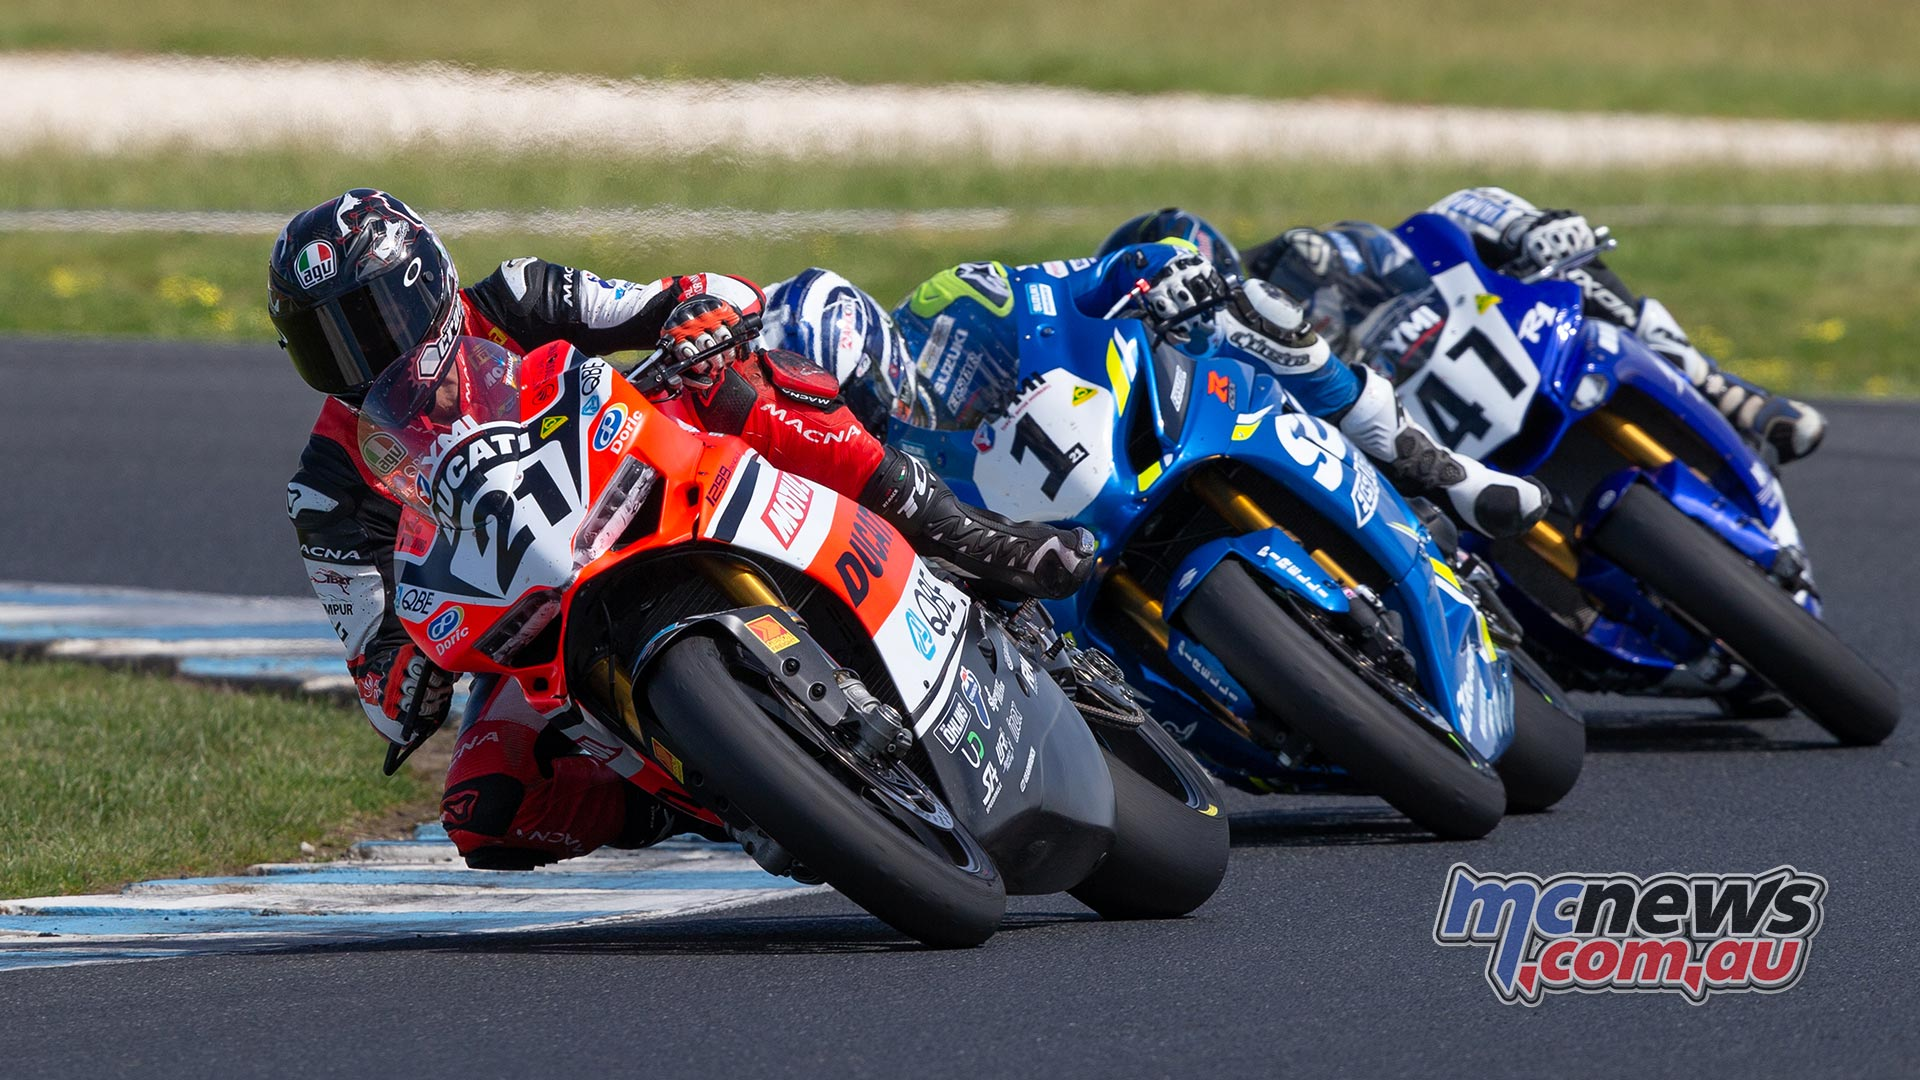 ASBK live on SBS and FoxSports throughout season 2019 | MCNews com au